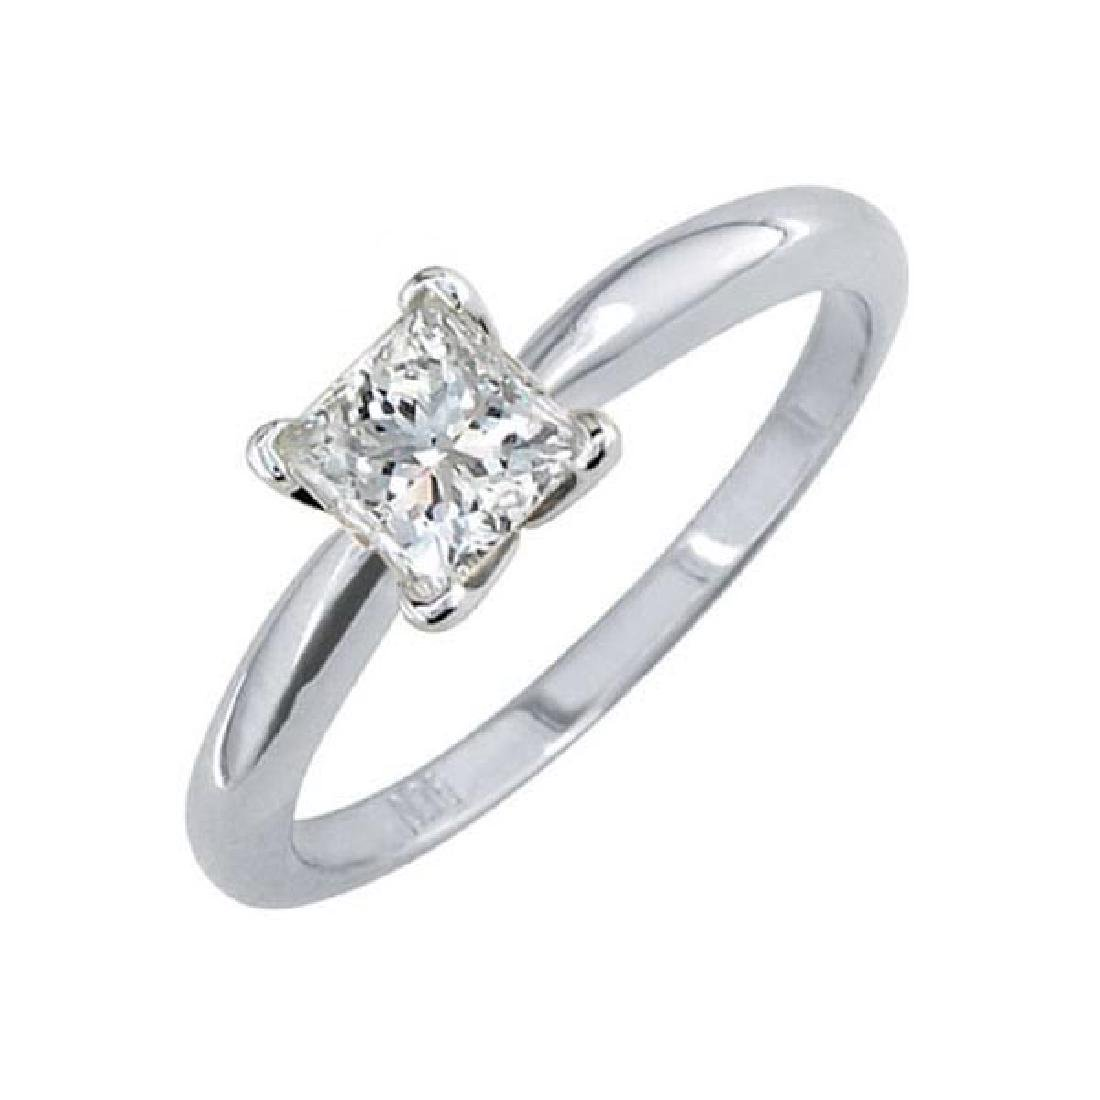 Certified 1.4 CTW Princess Diamond Solitaire 14k Ring D